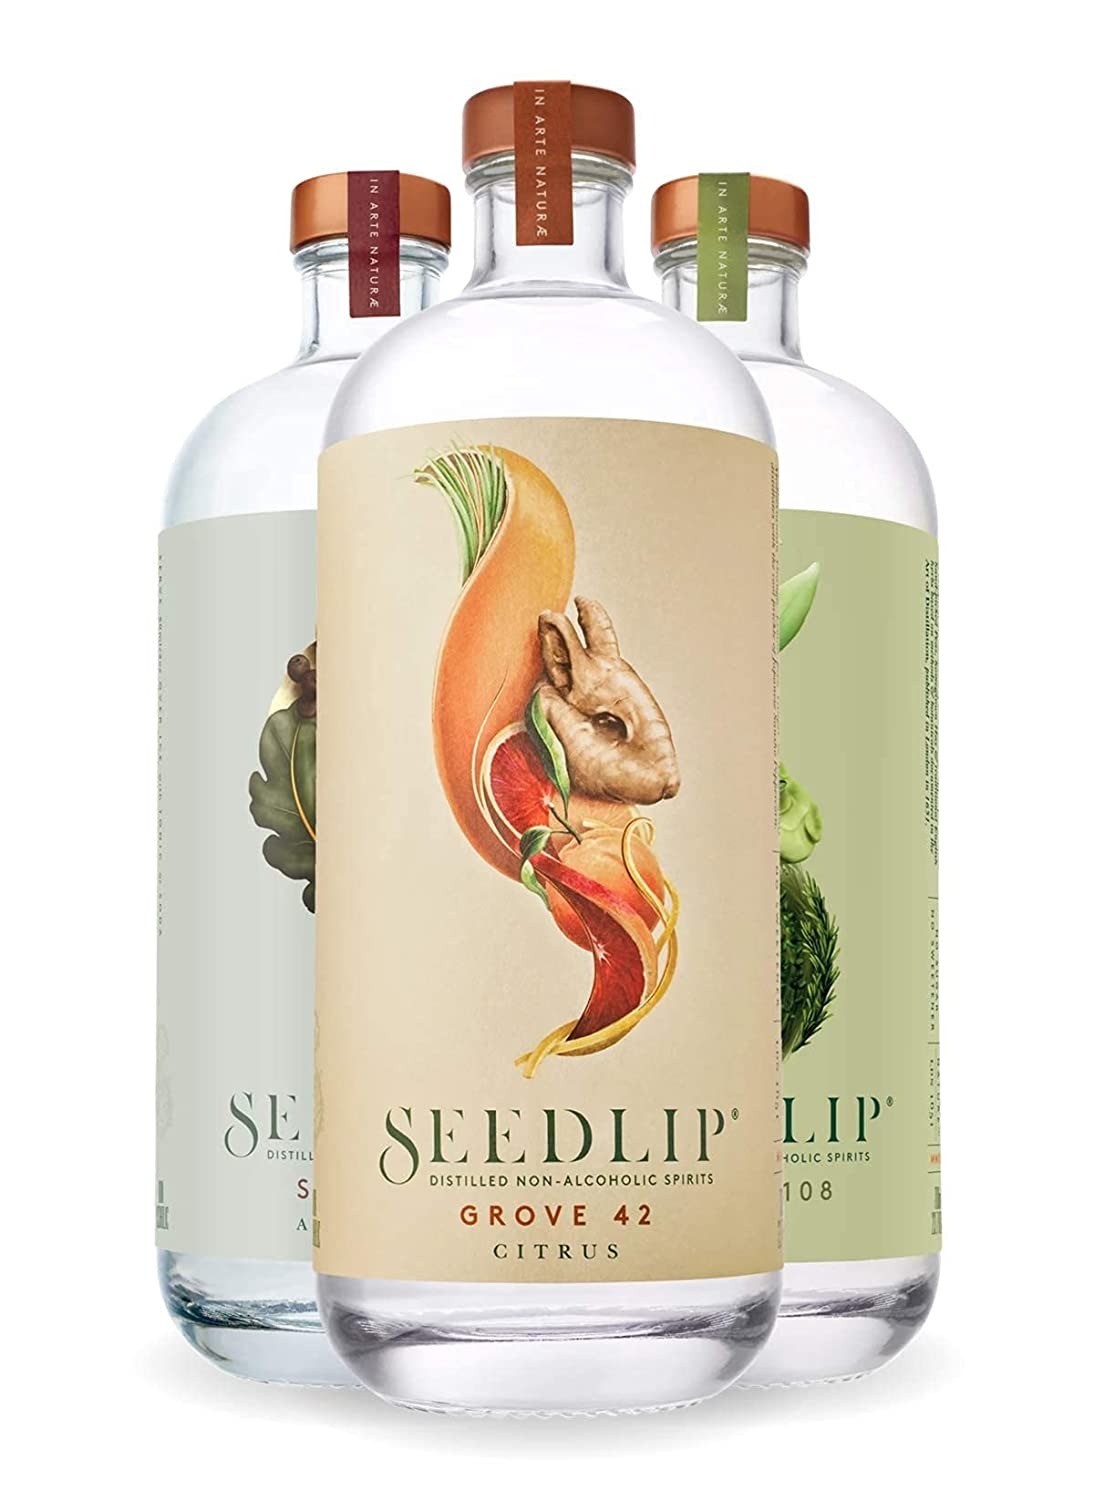 SEEDLIP - Distilled Non-Alcoholic Spirits Trio Pack - Grove 42, Garden 108 and Spice 94 - 23.7 fl oz (Pack of 3)